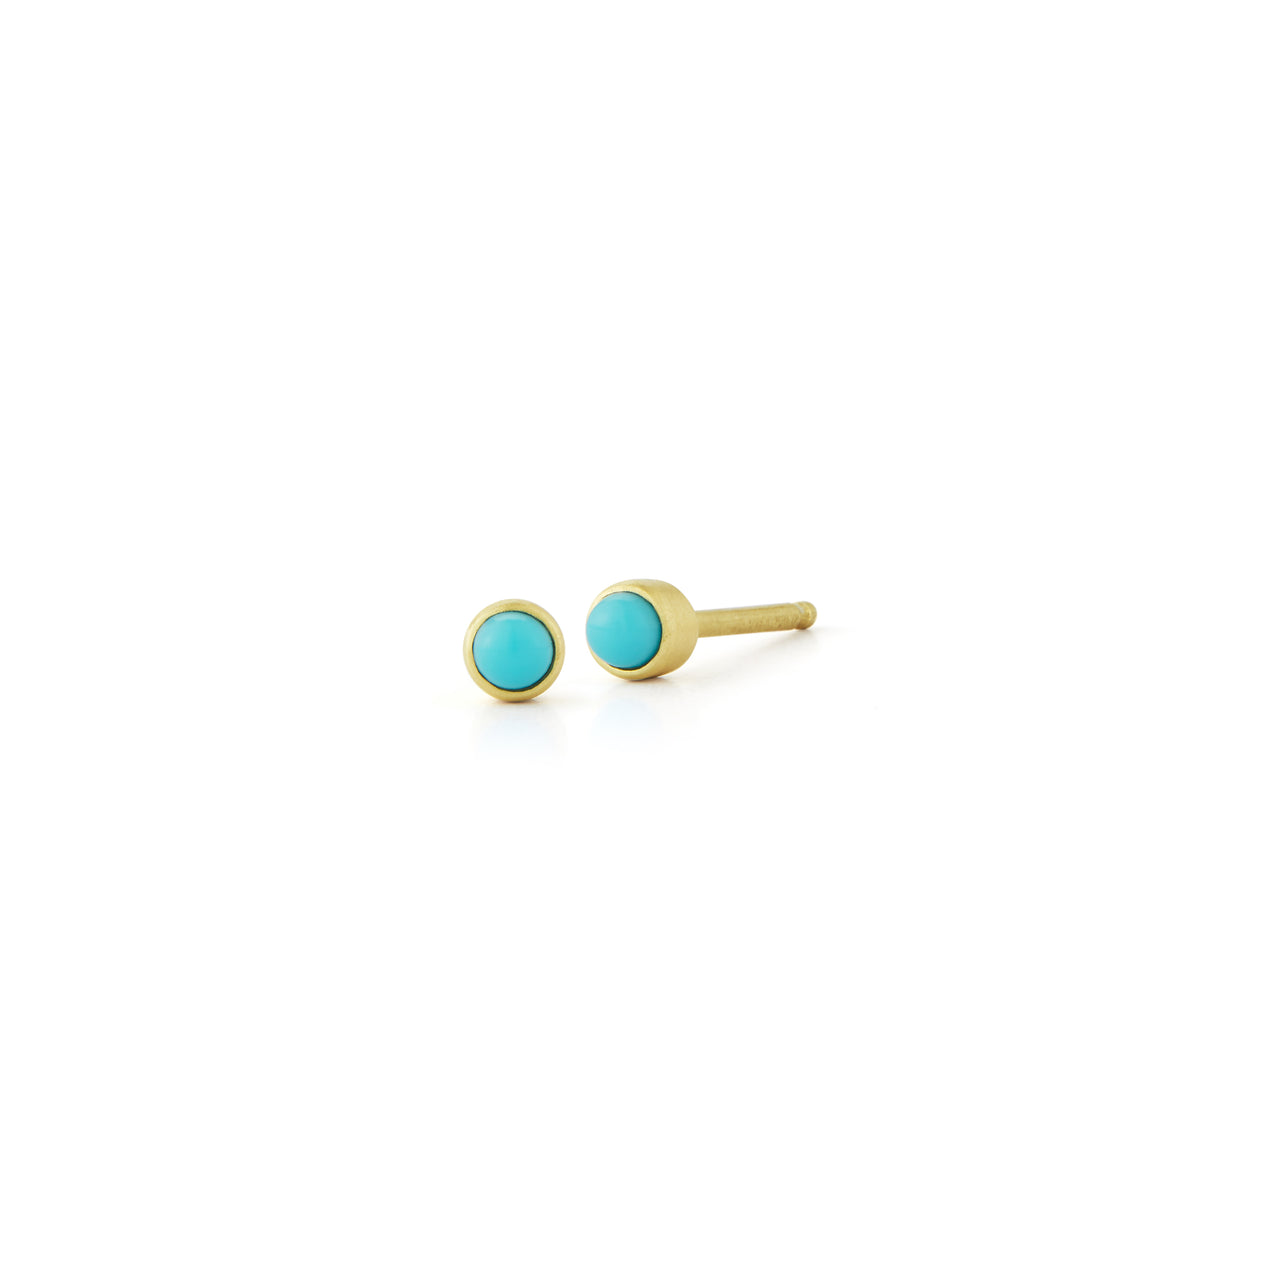 simple everyday turquoise blue stud earring in 14k satin gold for summer by finn by candice pool neistat